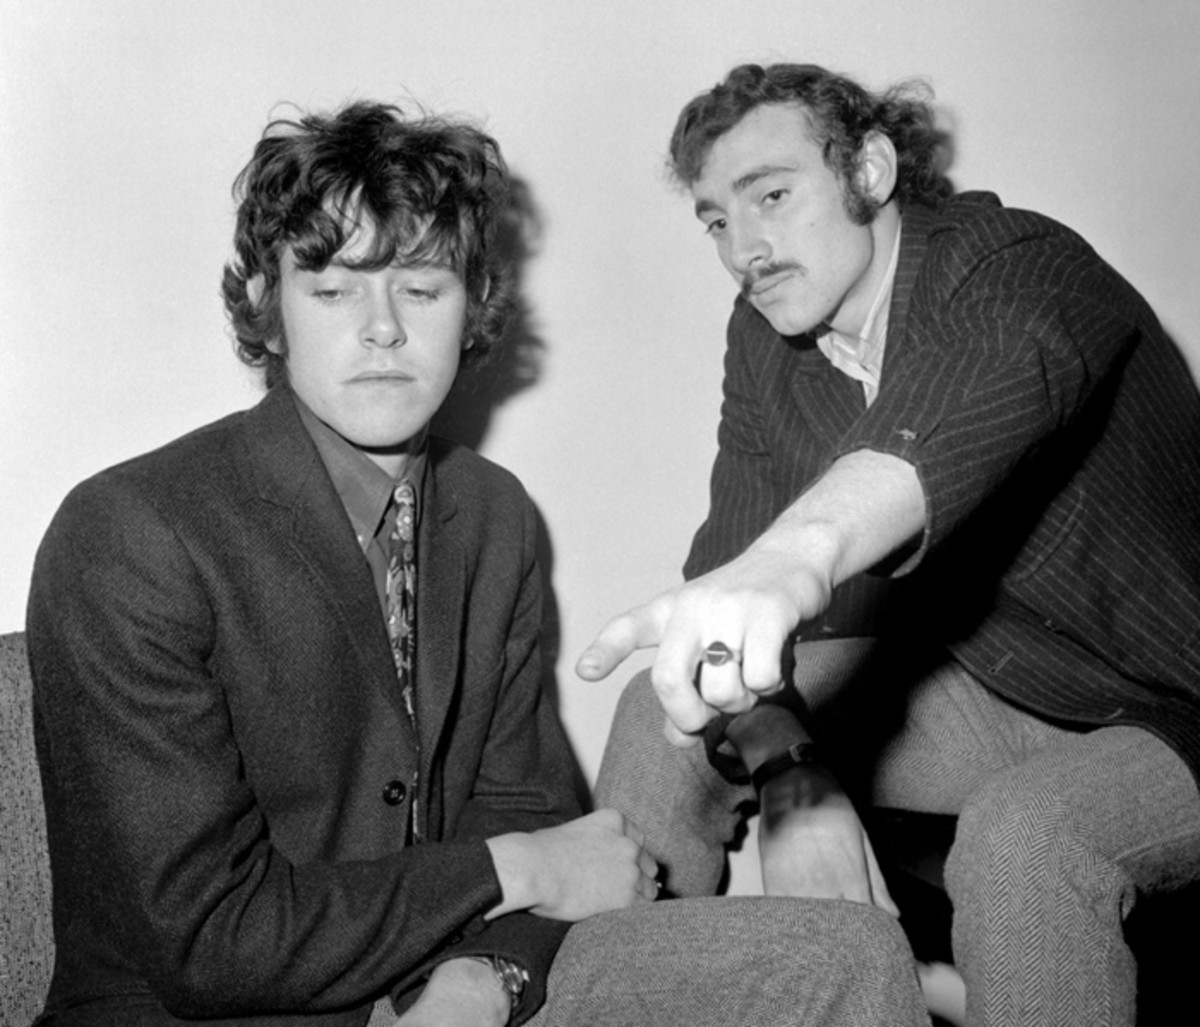 """Nineteen Sixty something, London,"" says Donovan of the photo above. ""My best friend Gypsy Dave and I are road warriors from even before FAME. In some Media office somewhere, Gyp is pointing to my coffee, if I care to drink some that early morning. It's obvious that we have not just had a spliff."" (Photo courtesy of Donovan)"